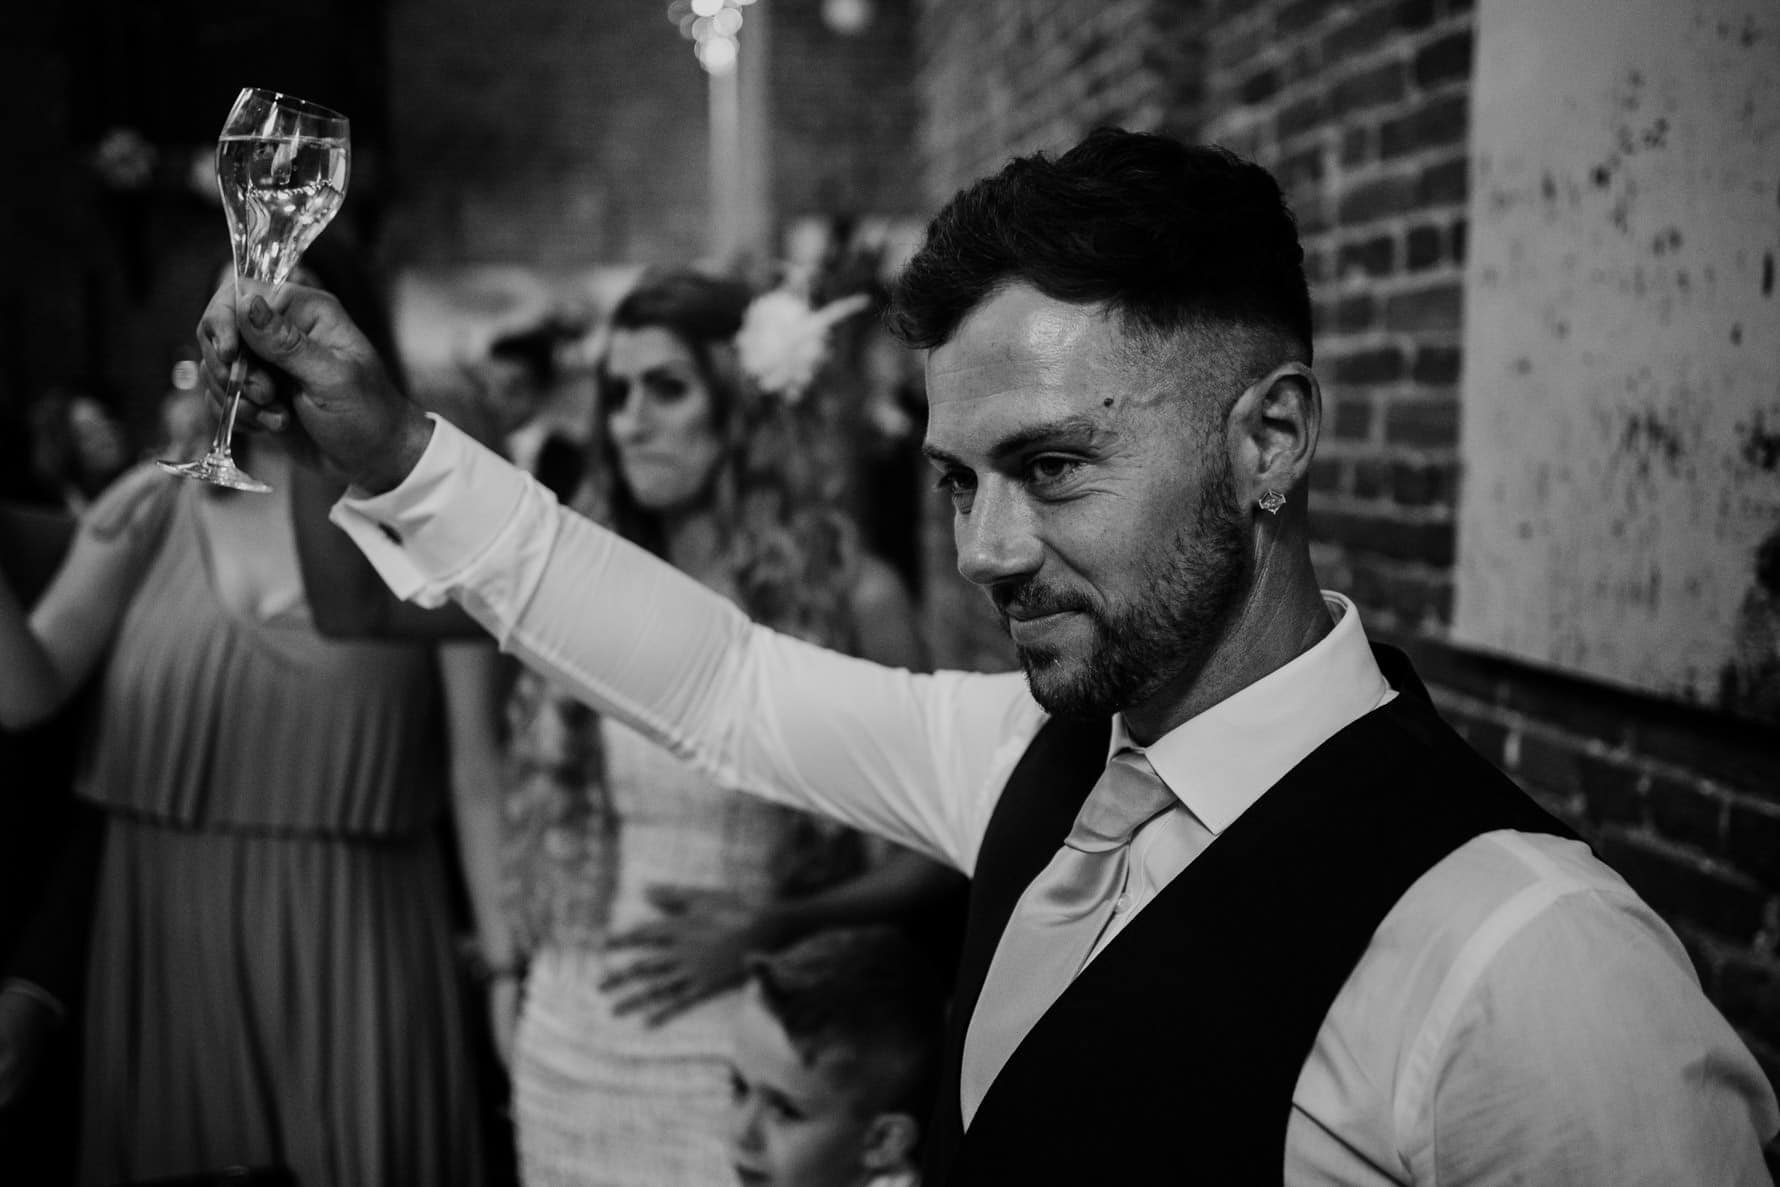 Wedding guest raising a toast during speeches